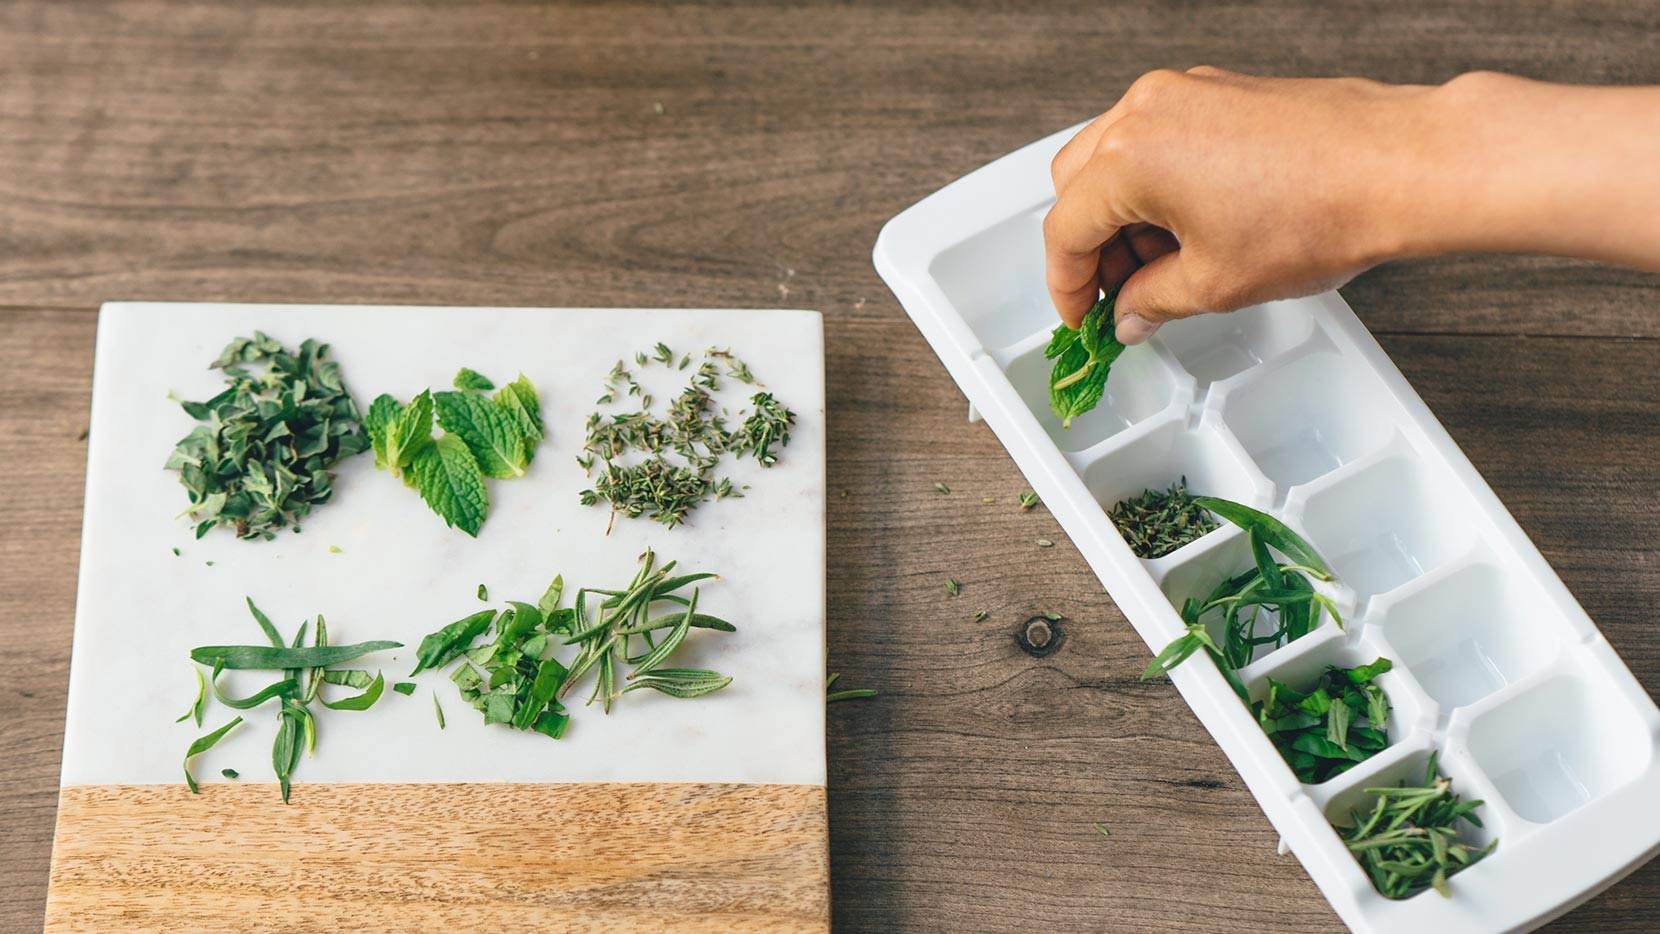 Add herbs to ice cube tray